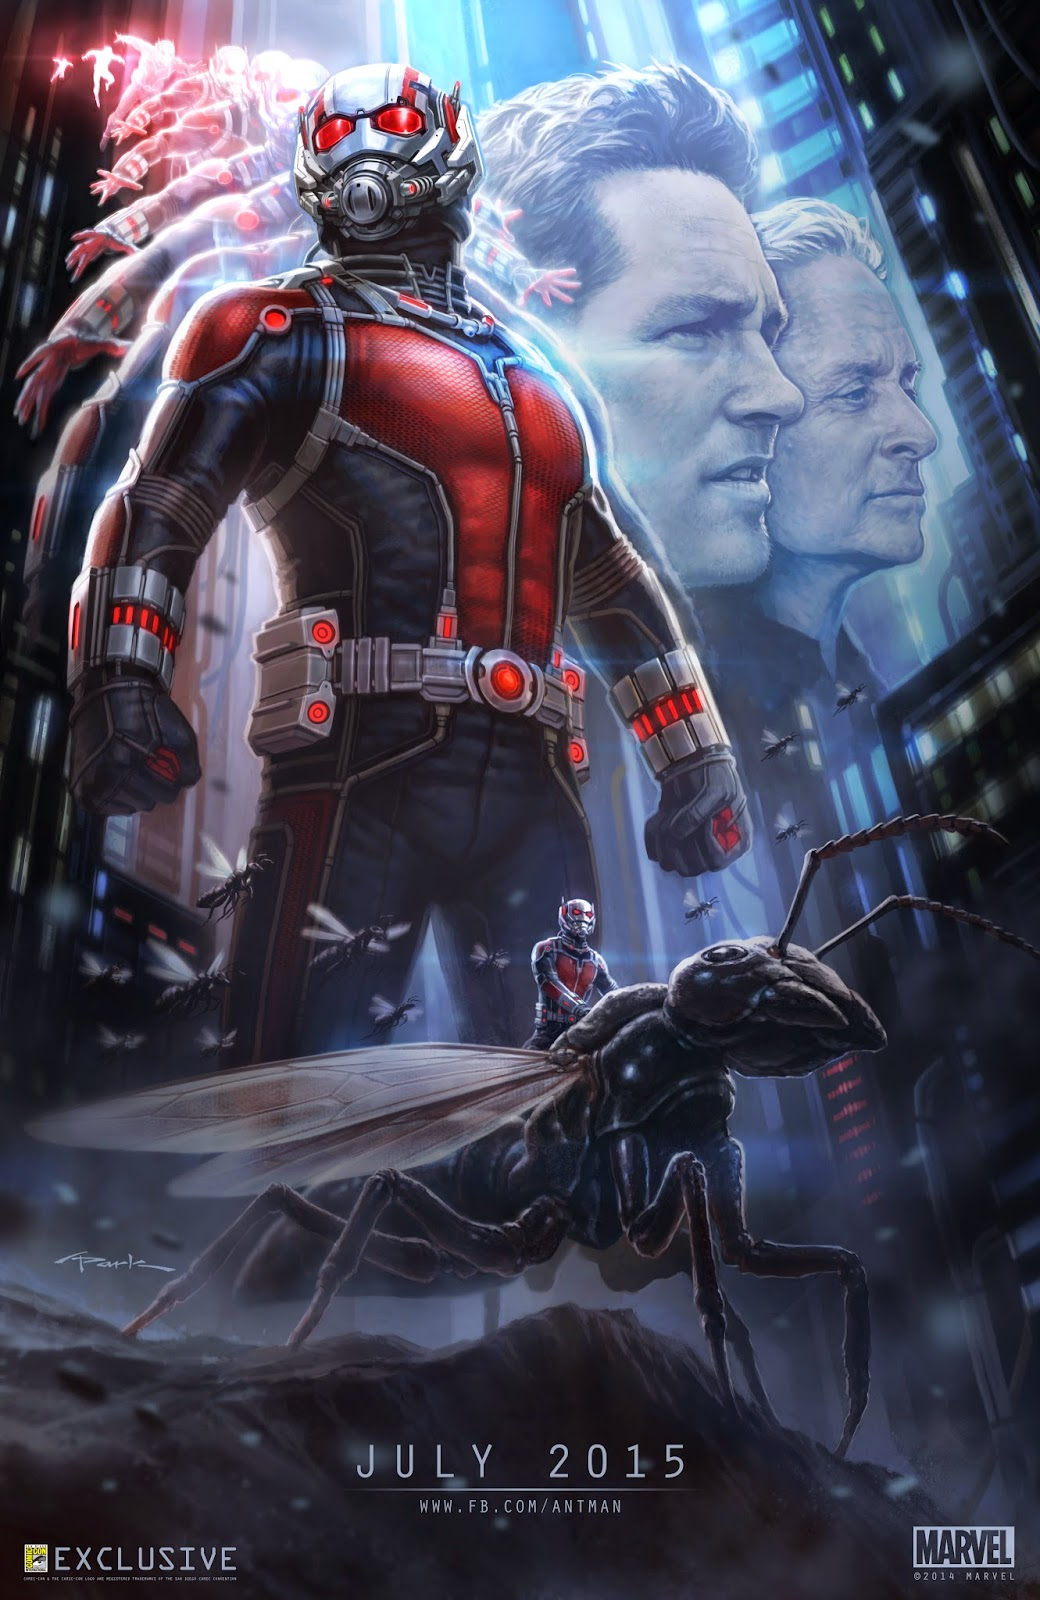 The Ant-Man Poster